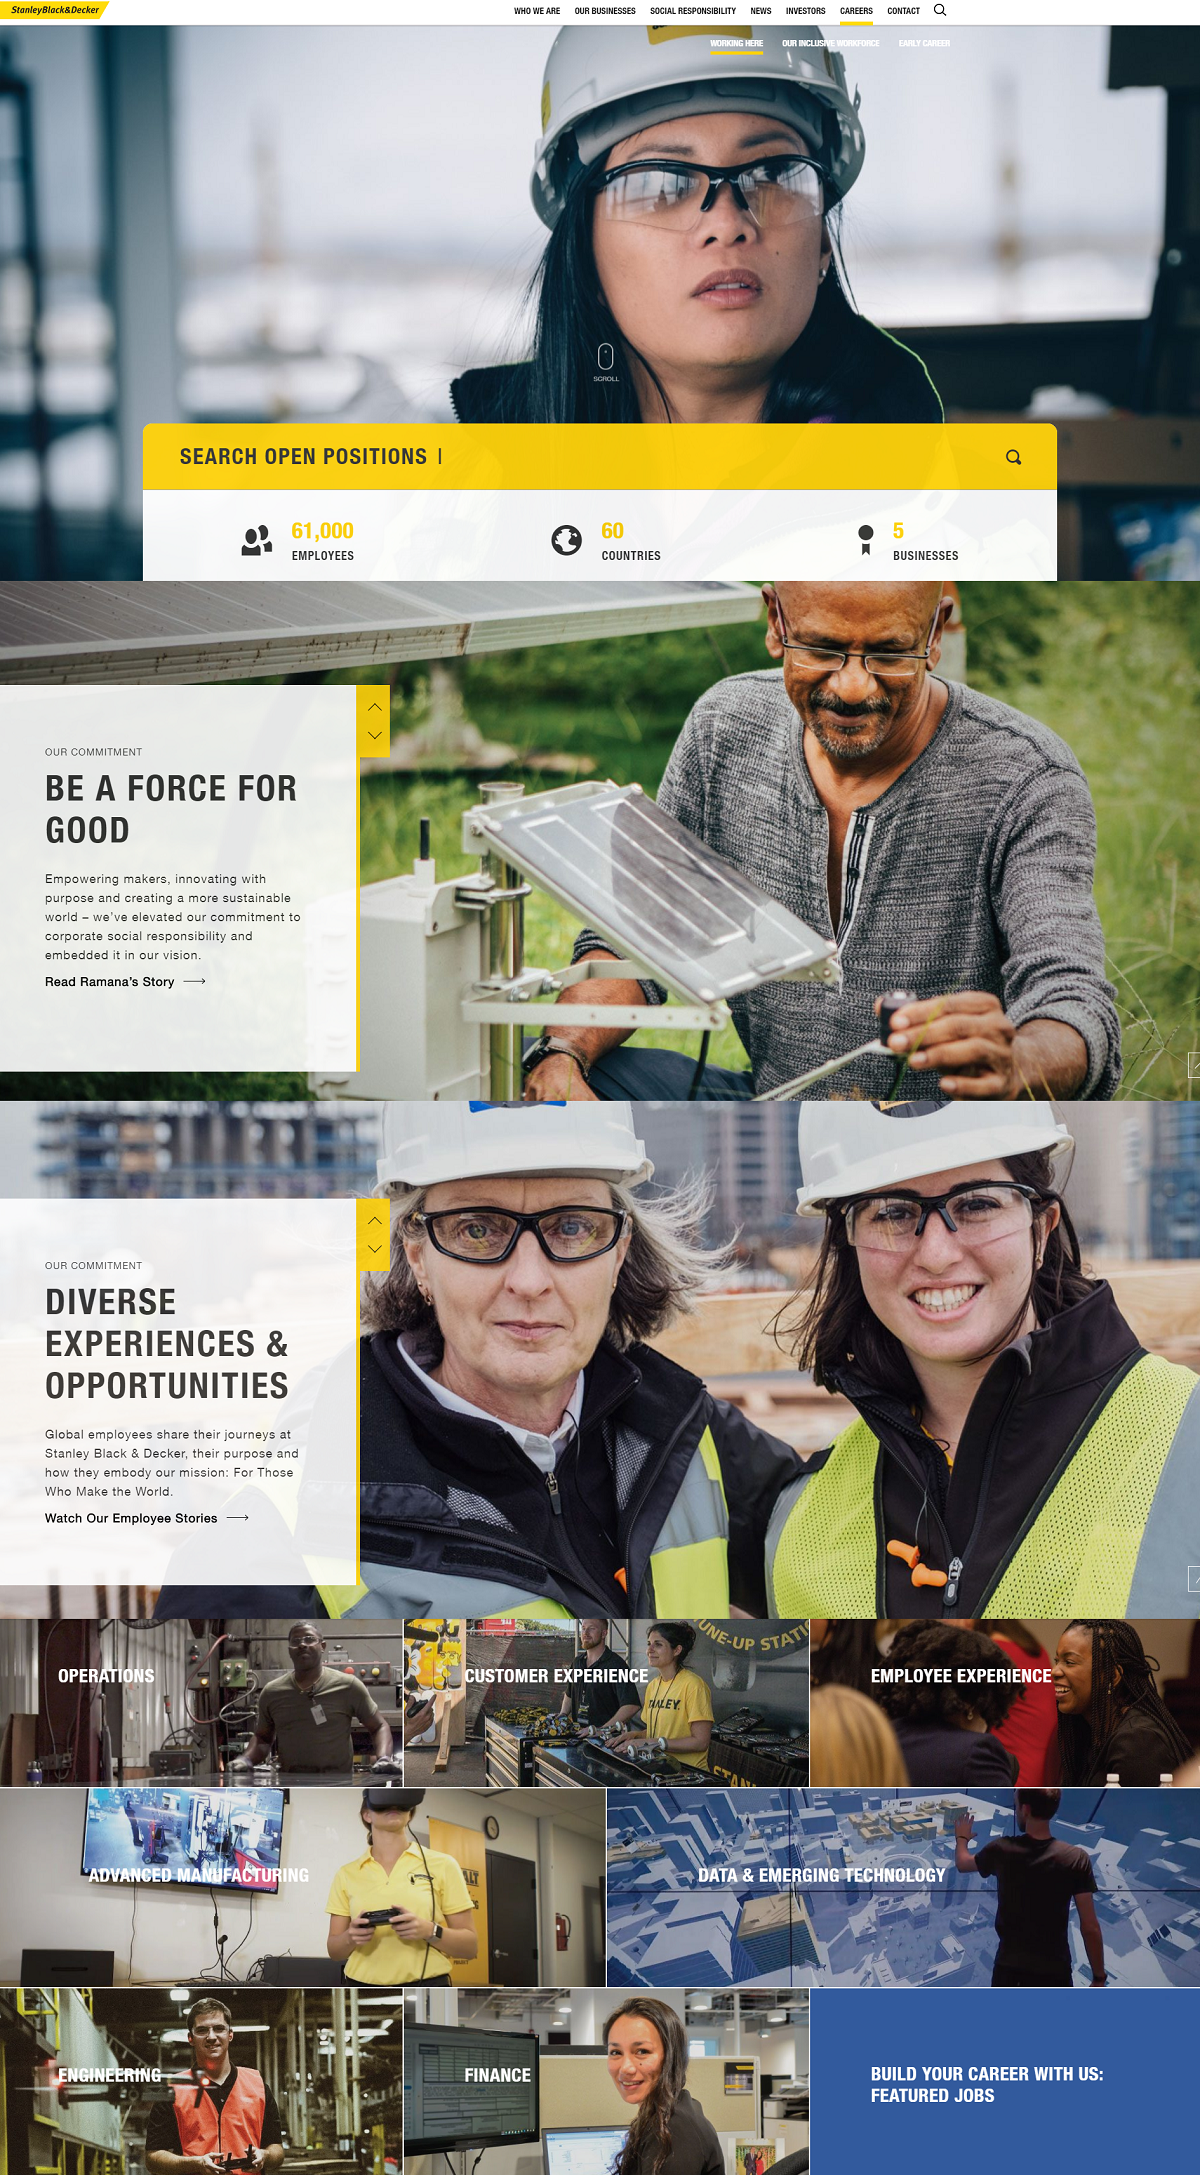 stanley black and decker career page